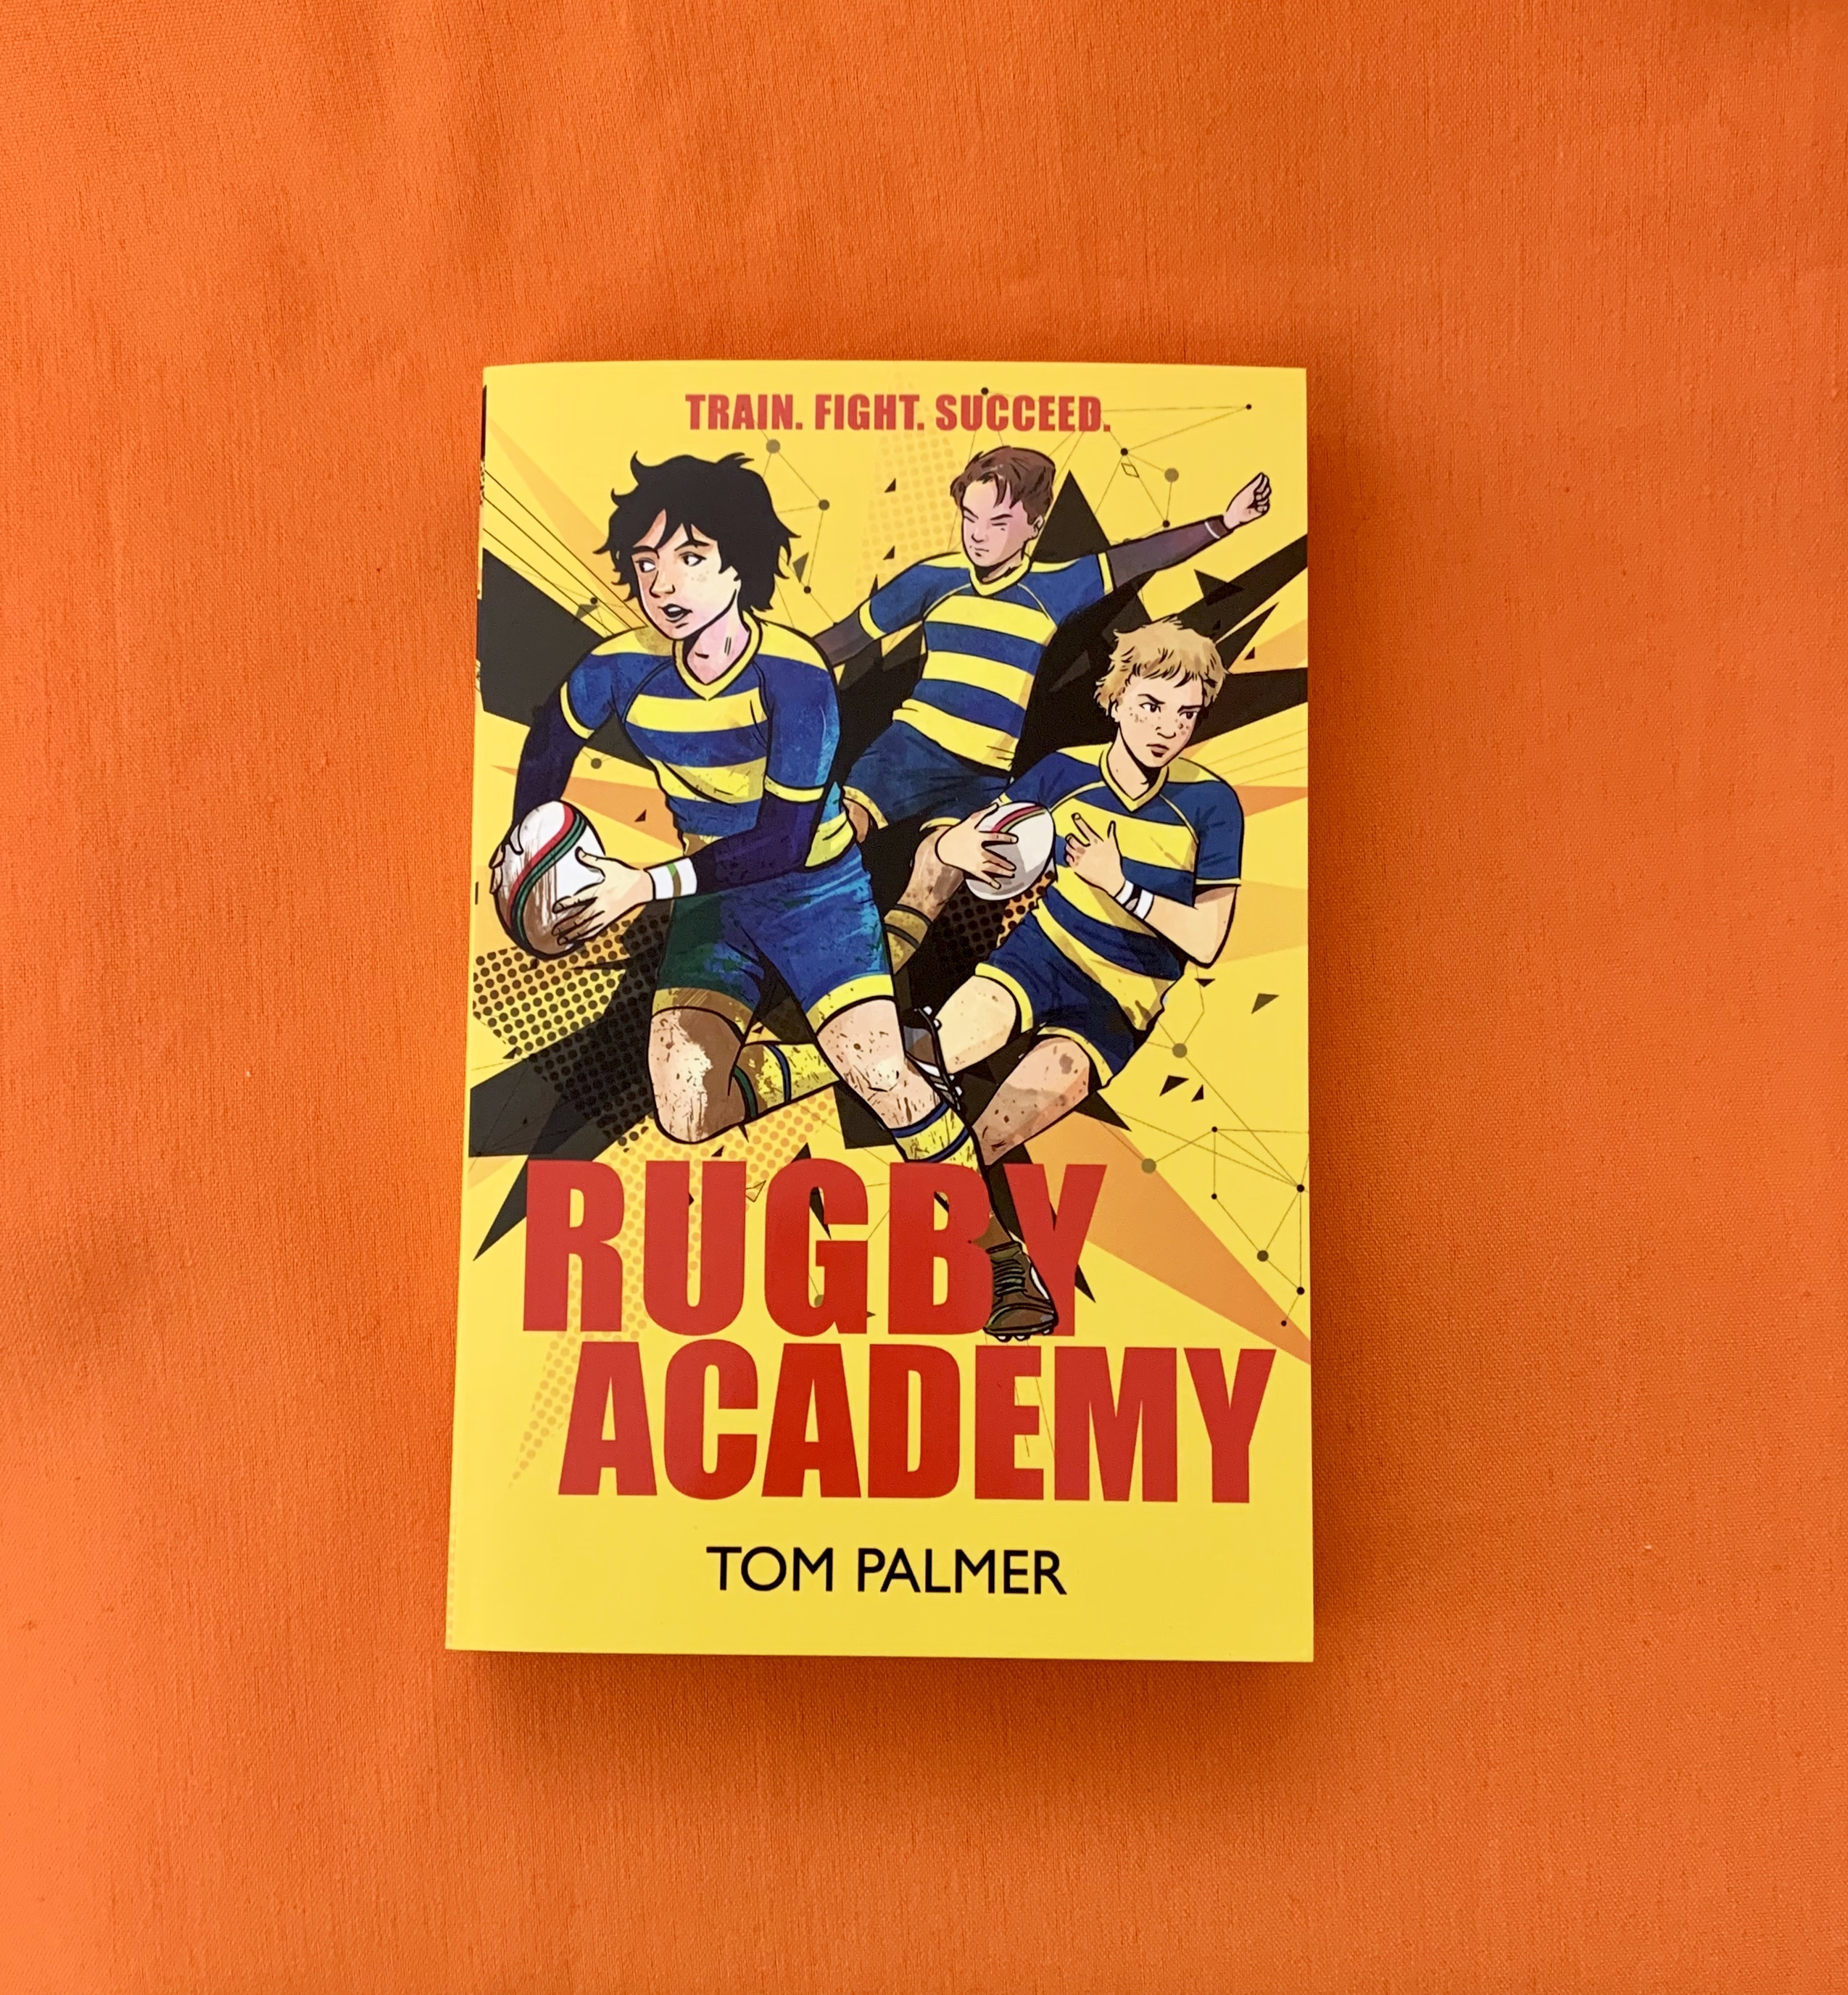 Photograph of Rugby Academy